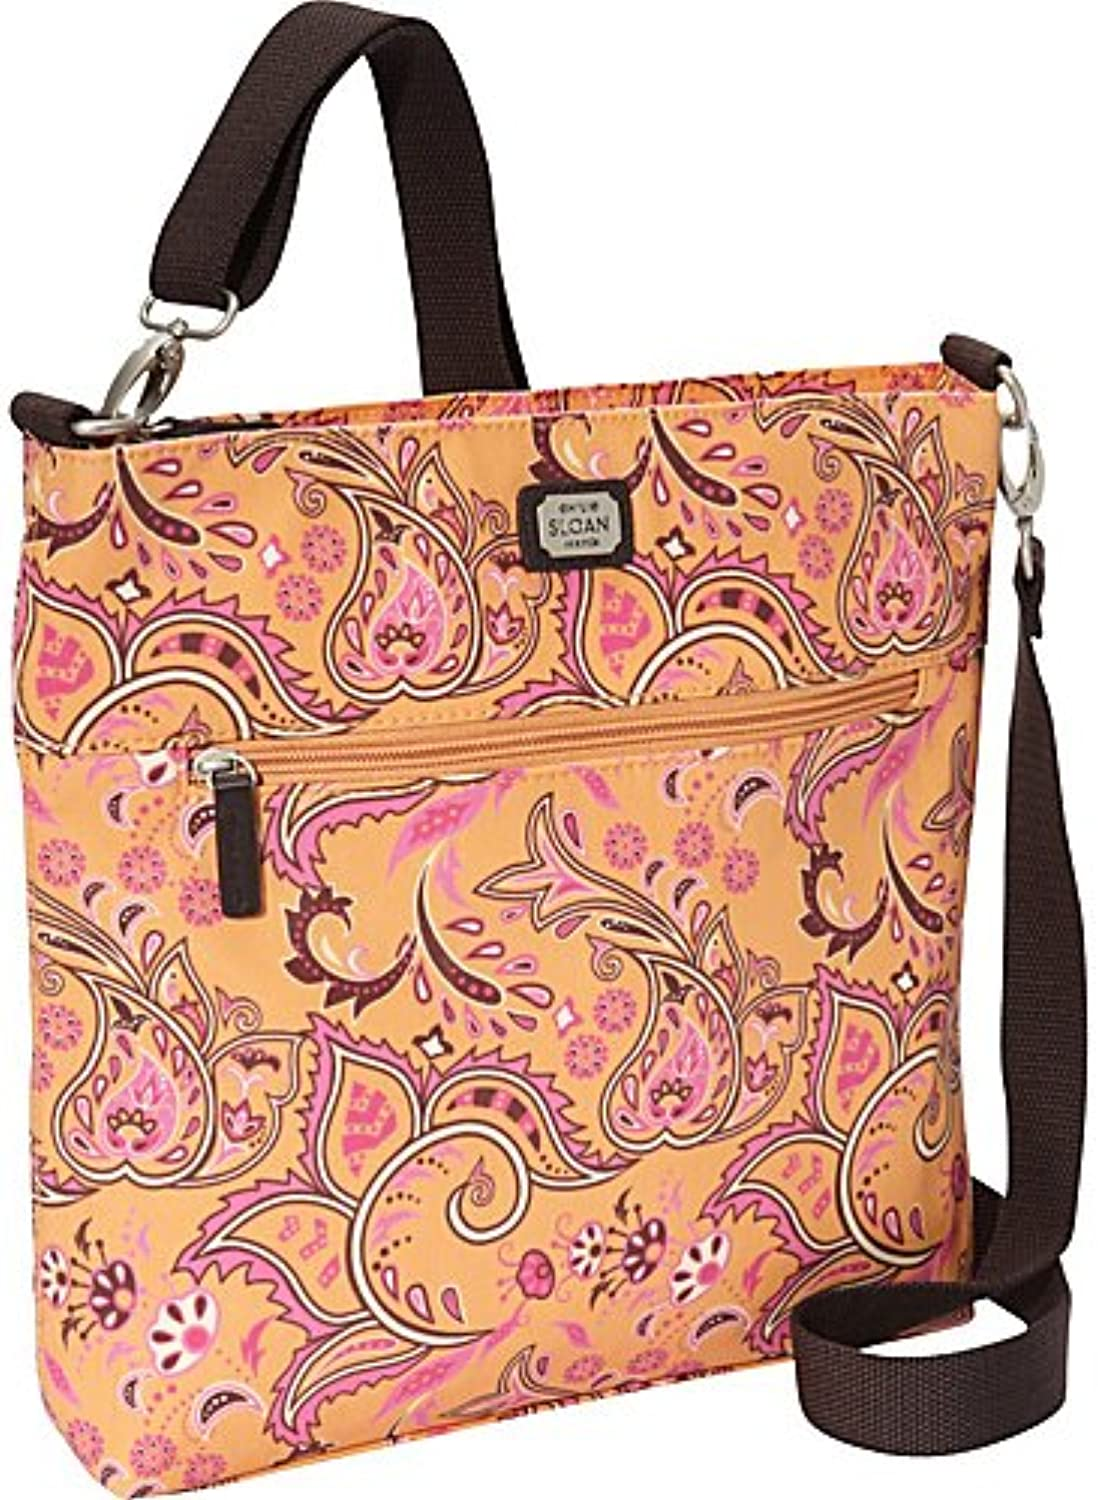 EMILIE SLOAN LOGAN TALL CROSS BODY BAG (TANGERINE)